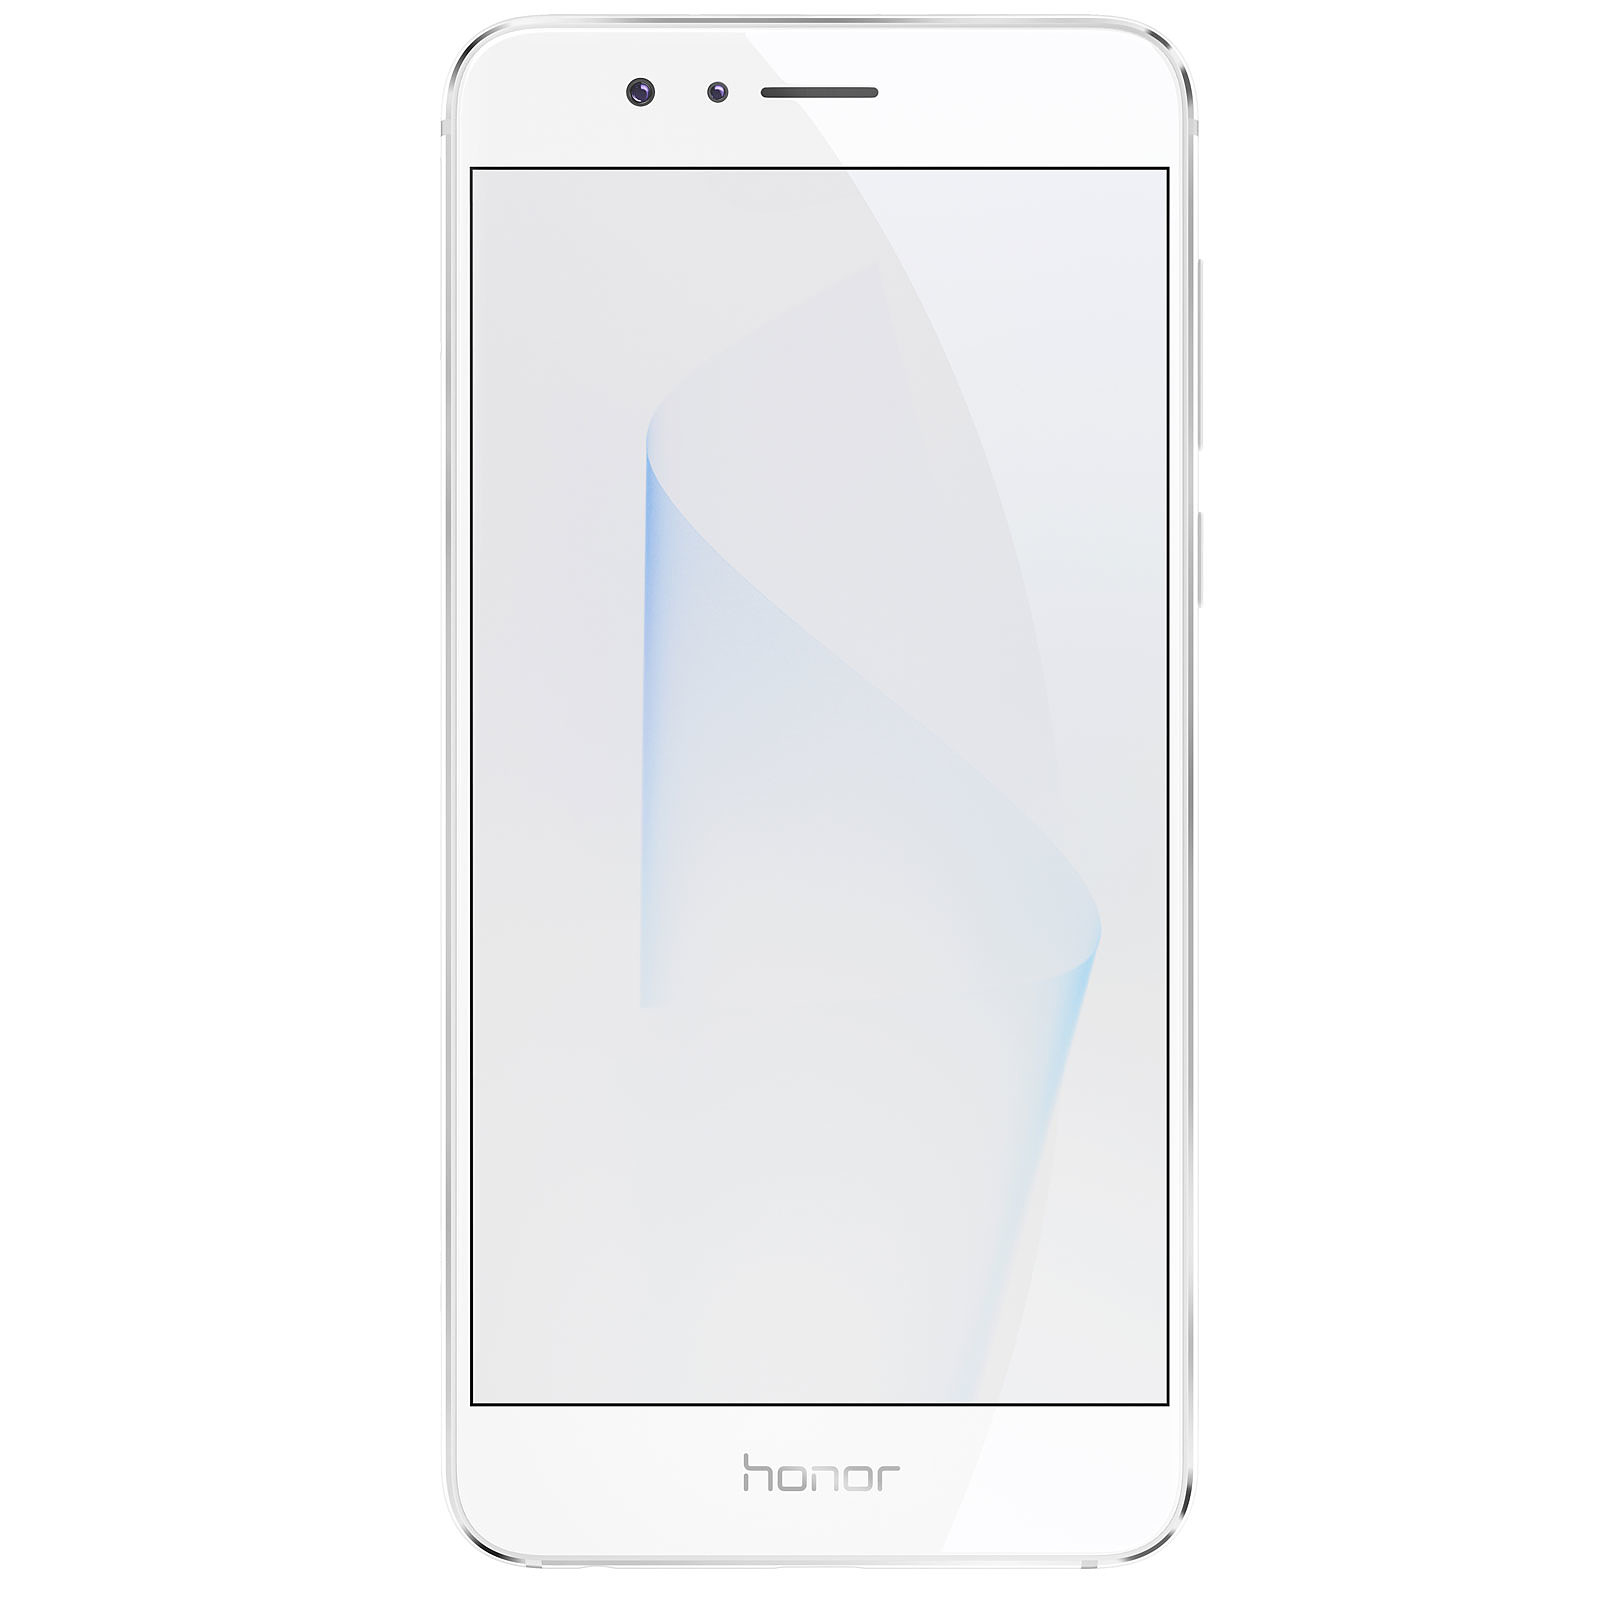 honor 8 blanc 32 go mobile smartphone honor sur. Black Bedroom Furniture Sets. Home Design Ideas